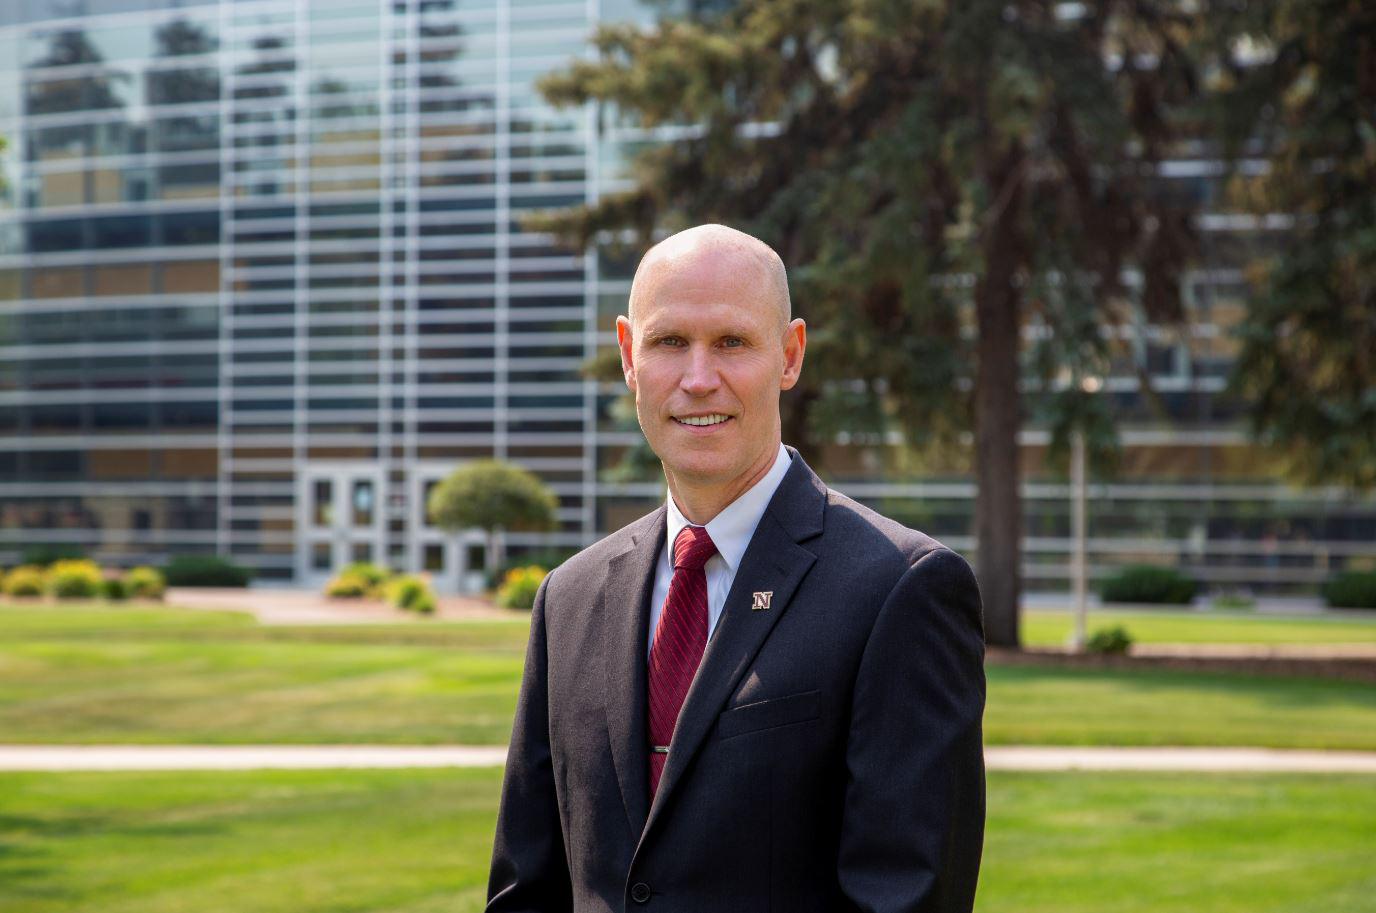 NSU  President Neal H. Schnoor, wearing a dark suit and maroon tie, stands on the campus green with the Tech Center in the background.